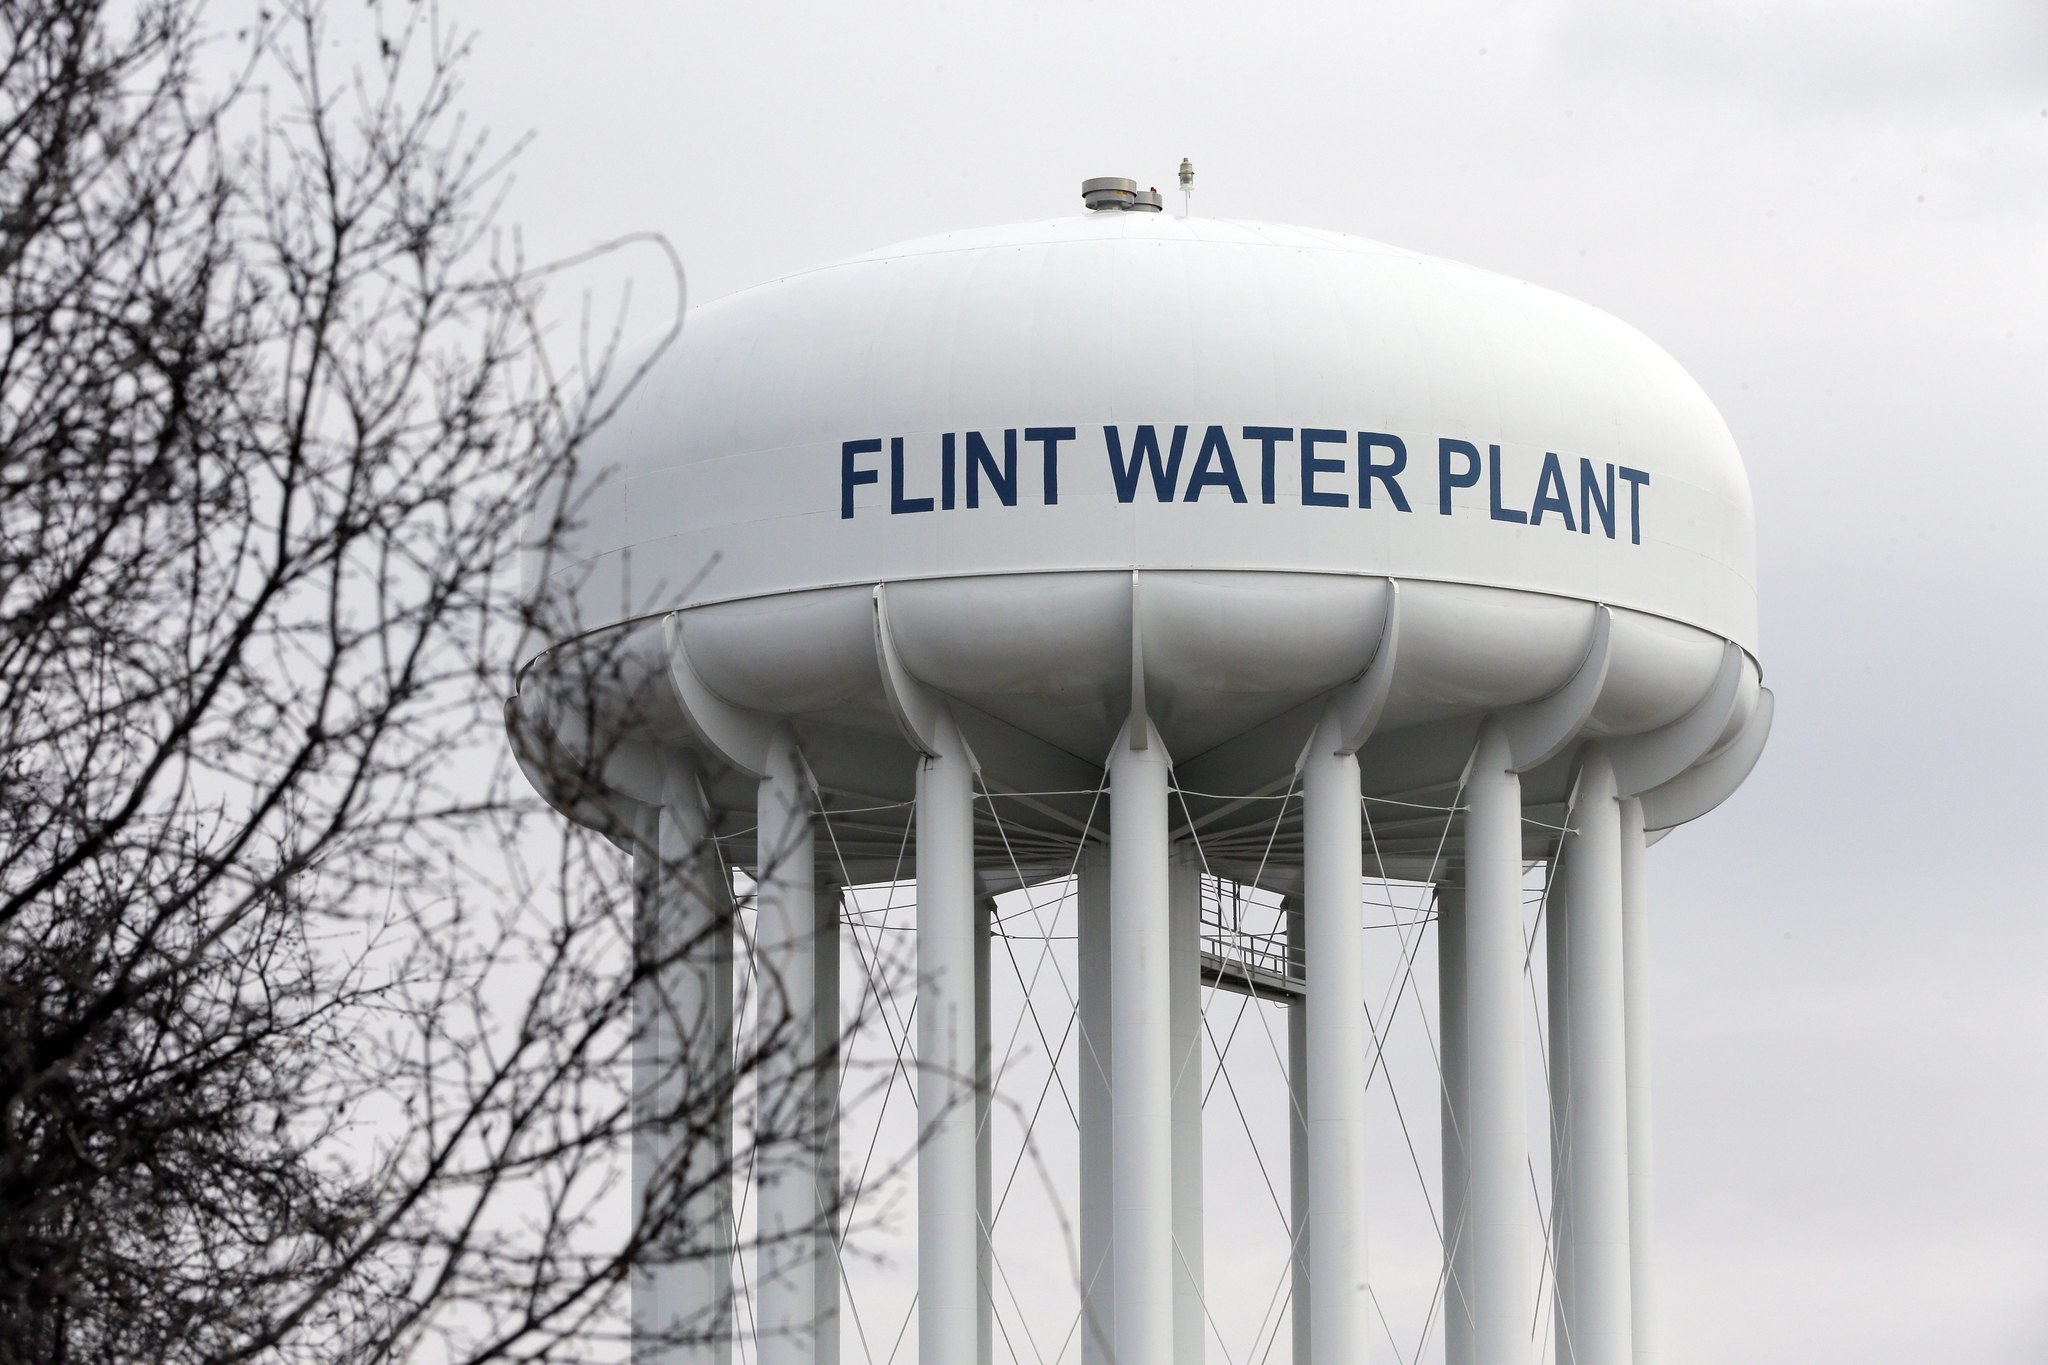 EPA official: Improvement seen in Flint's water system